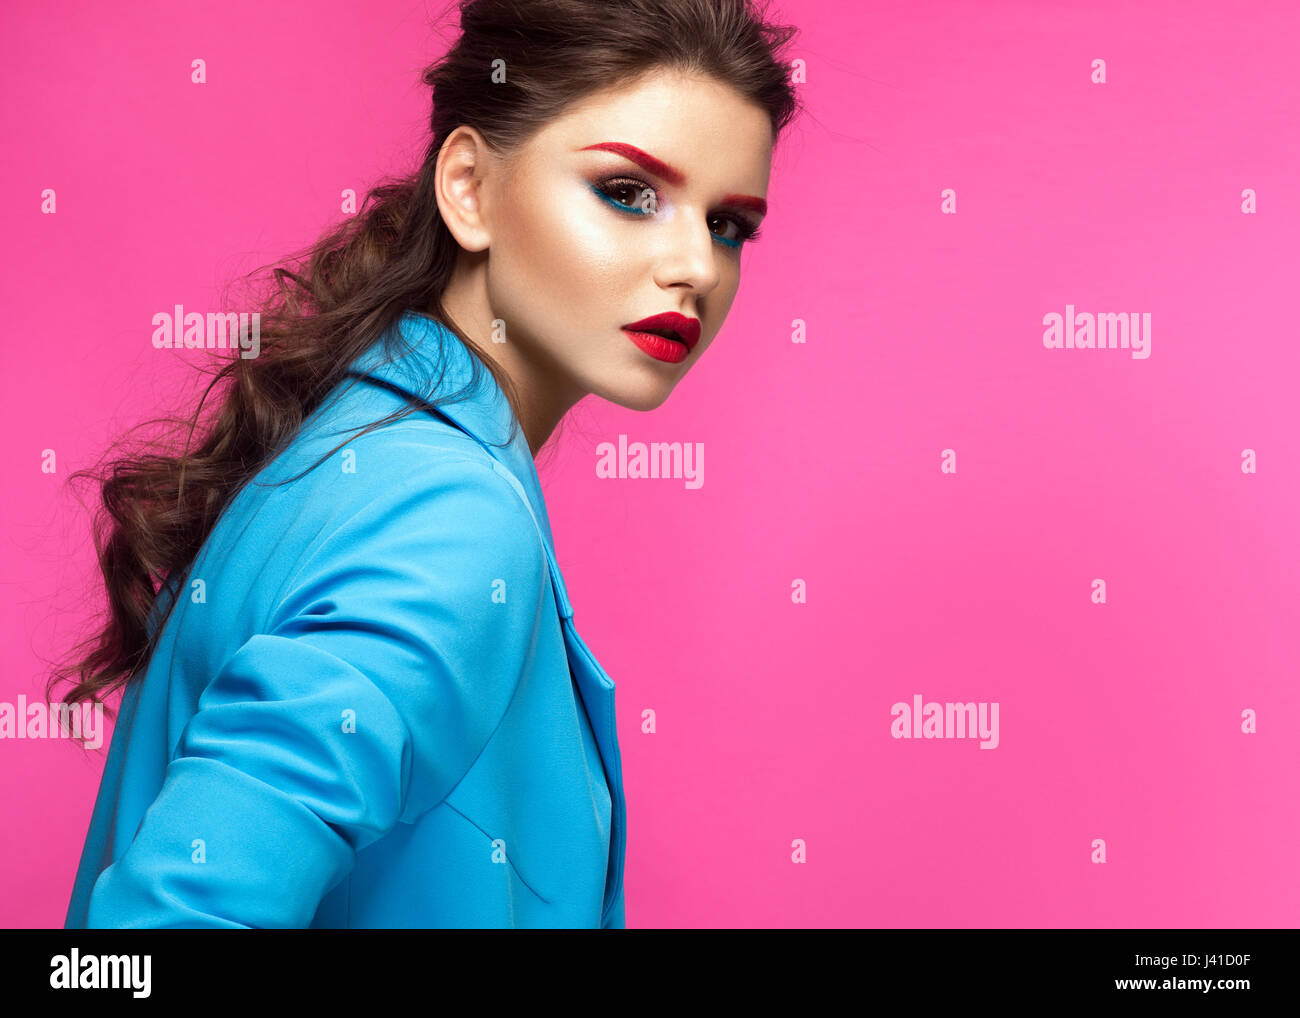 Trendy Makeup Imágenes De Stock & Trendy Makeup Fotos De Stock - Alamy